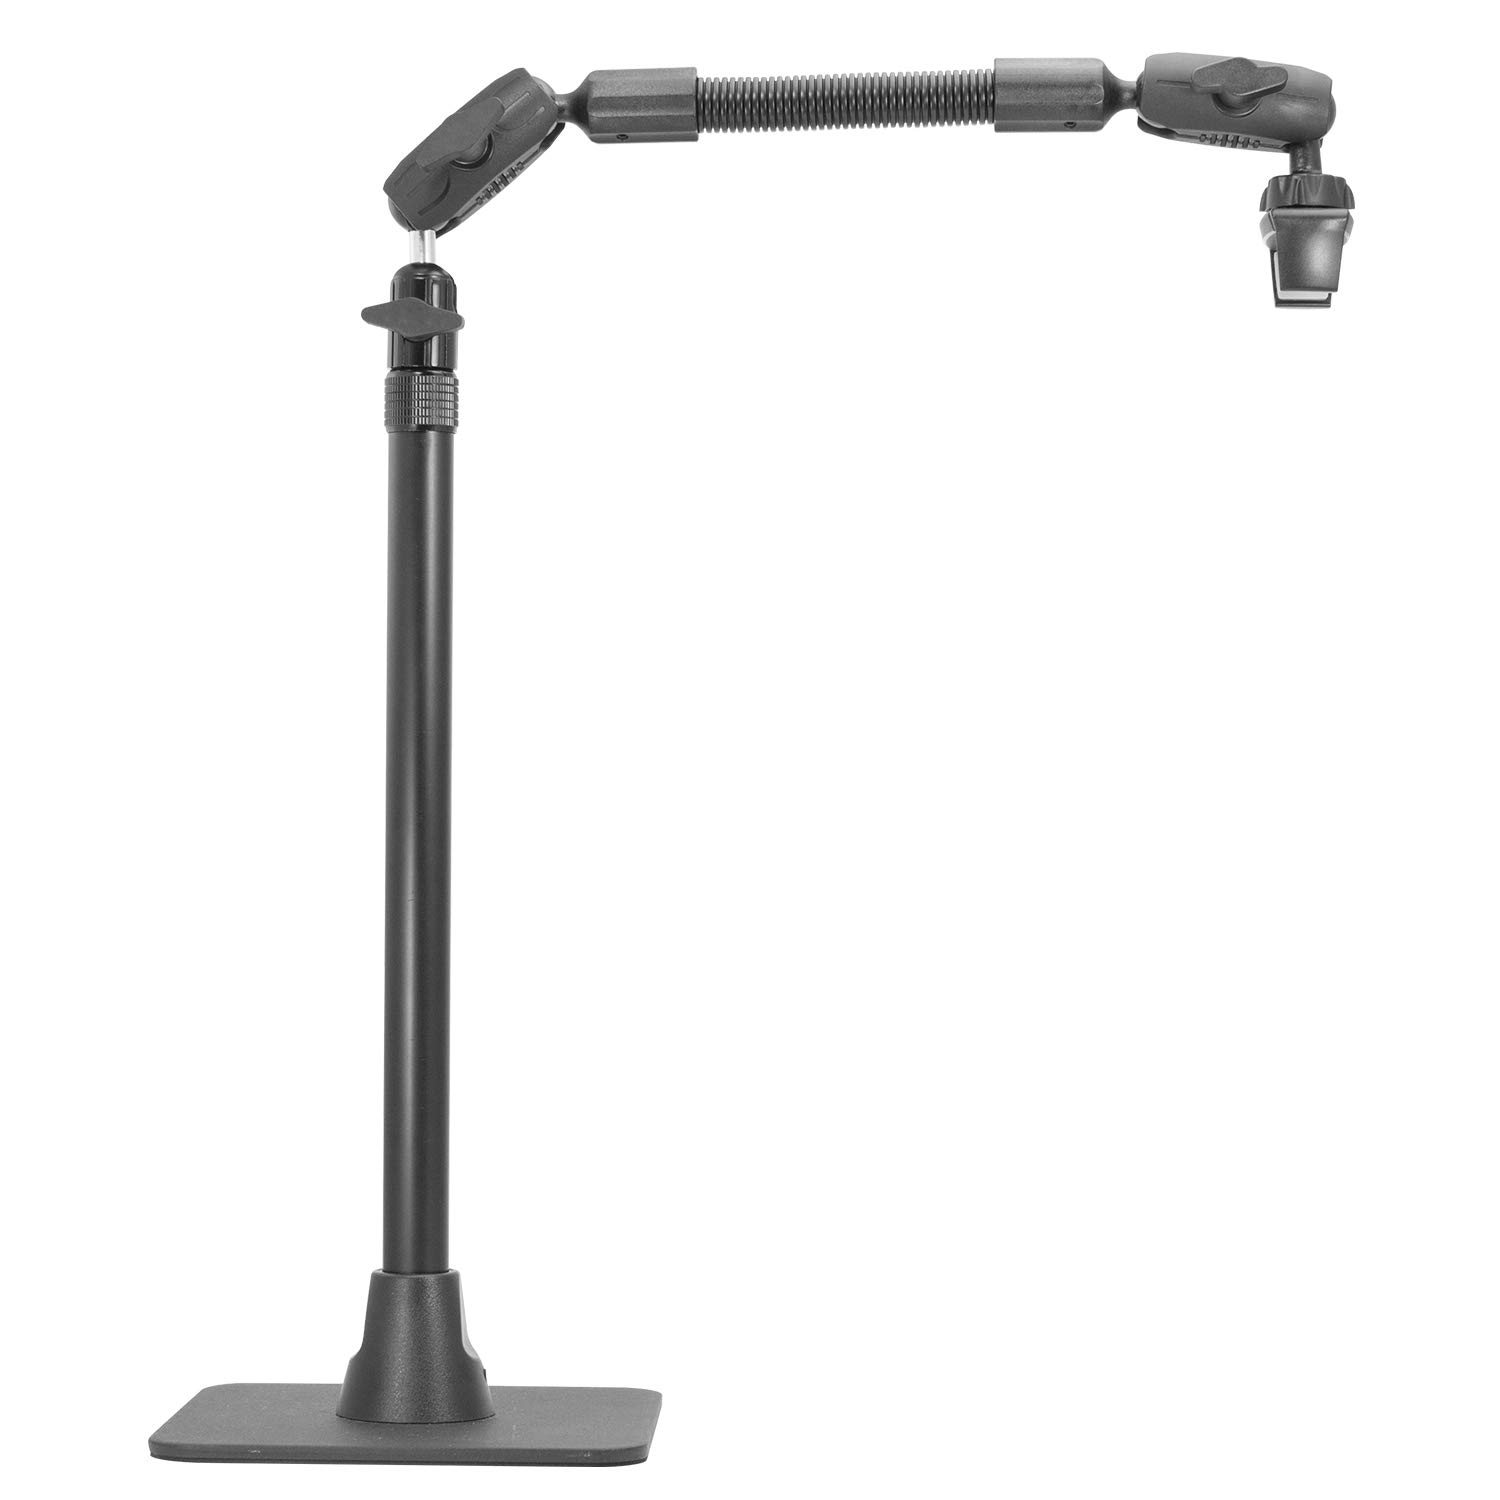 iBOLT Stream-Cast Stand Adjustable Overhead Phone Mount for Live Streaming Tutorial Videos and Photos. Great for Crafters, Bakers, Artists- iPhone Xs, Samsung Galaxy S9, Note 9 Etc. by iBOLT.co